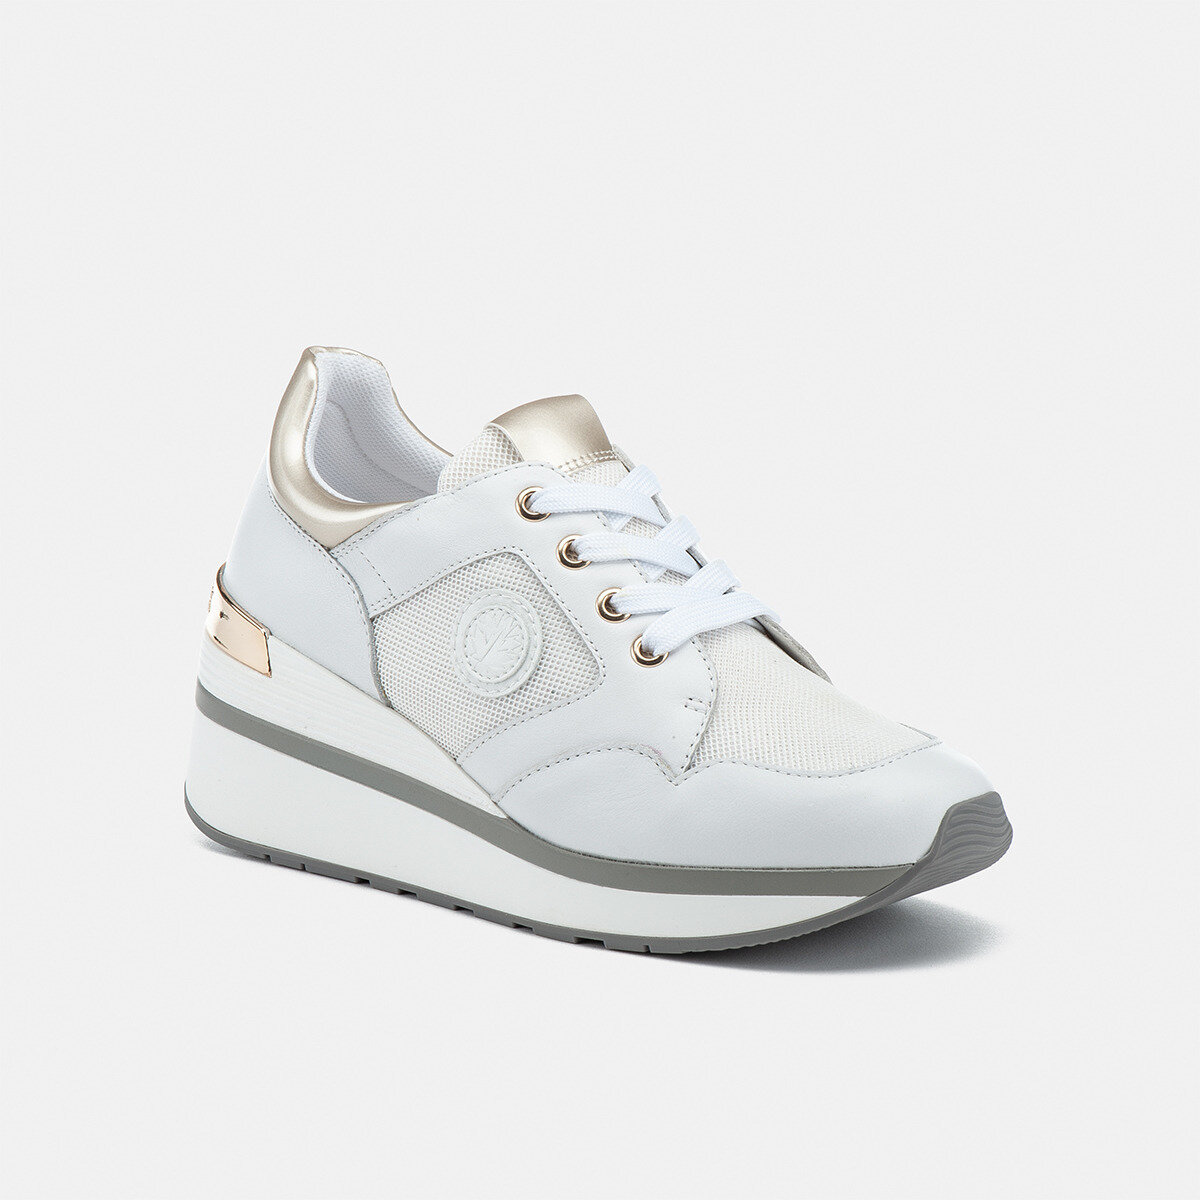 MILA WHITE/PLATINO Woman Sneakers